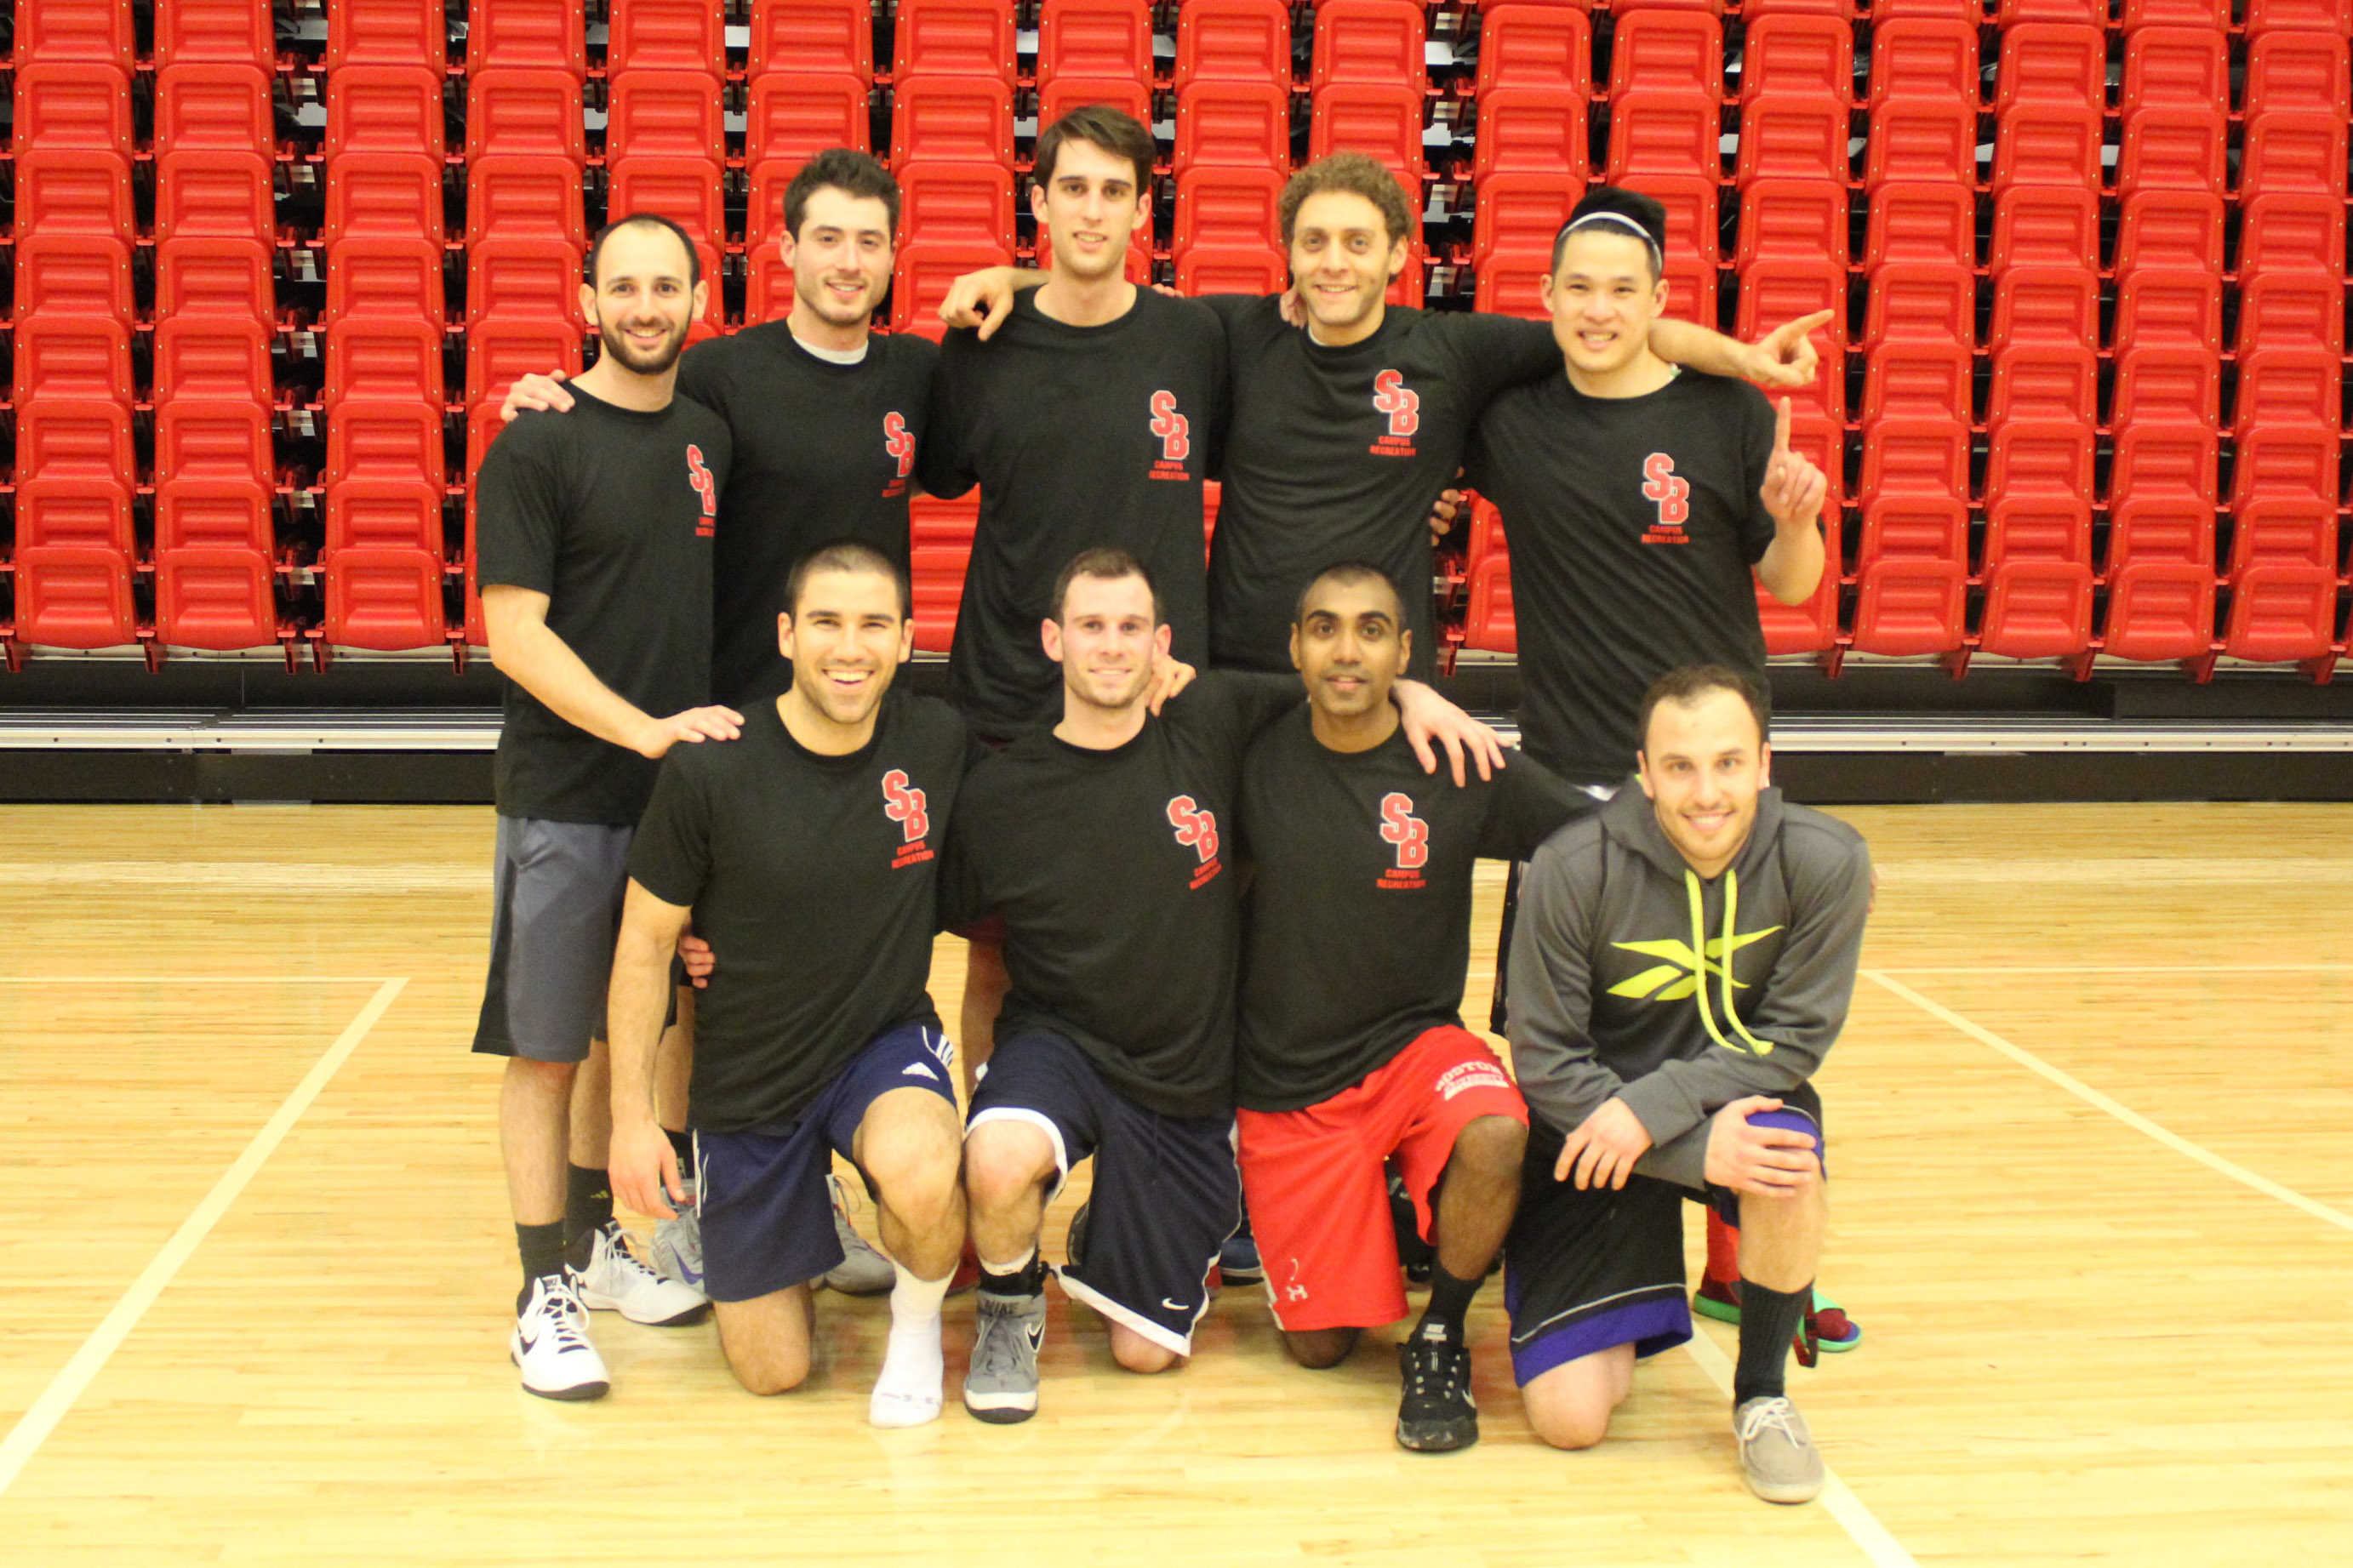 Creamsickles: Open Recreational Basketball Champions